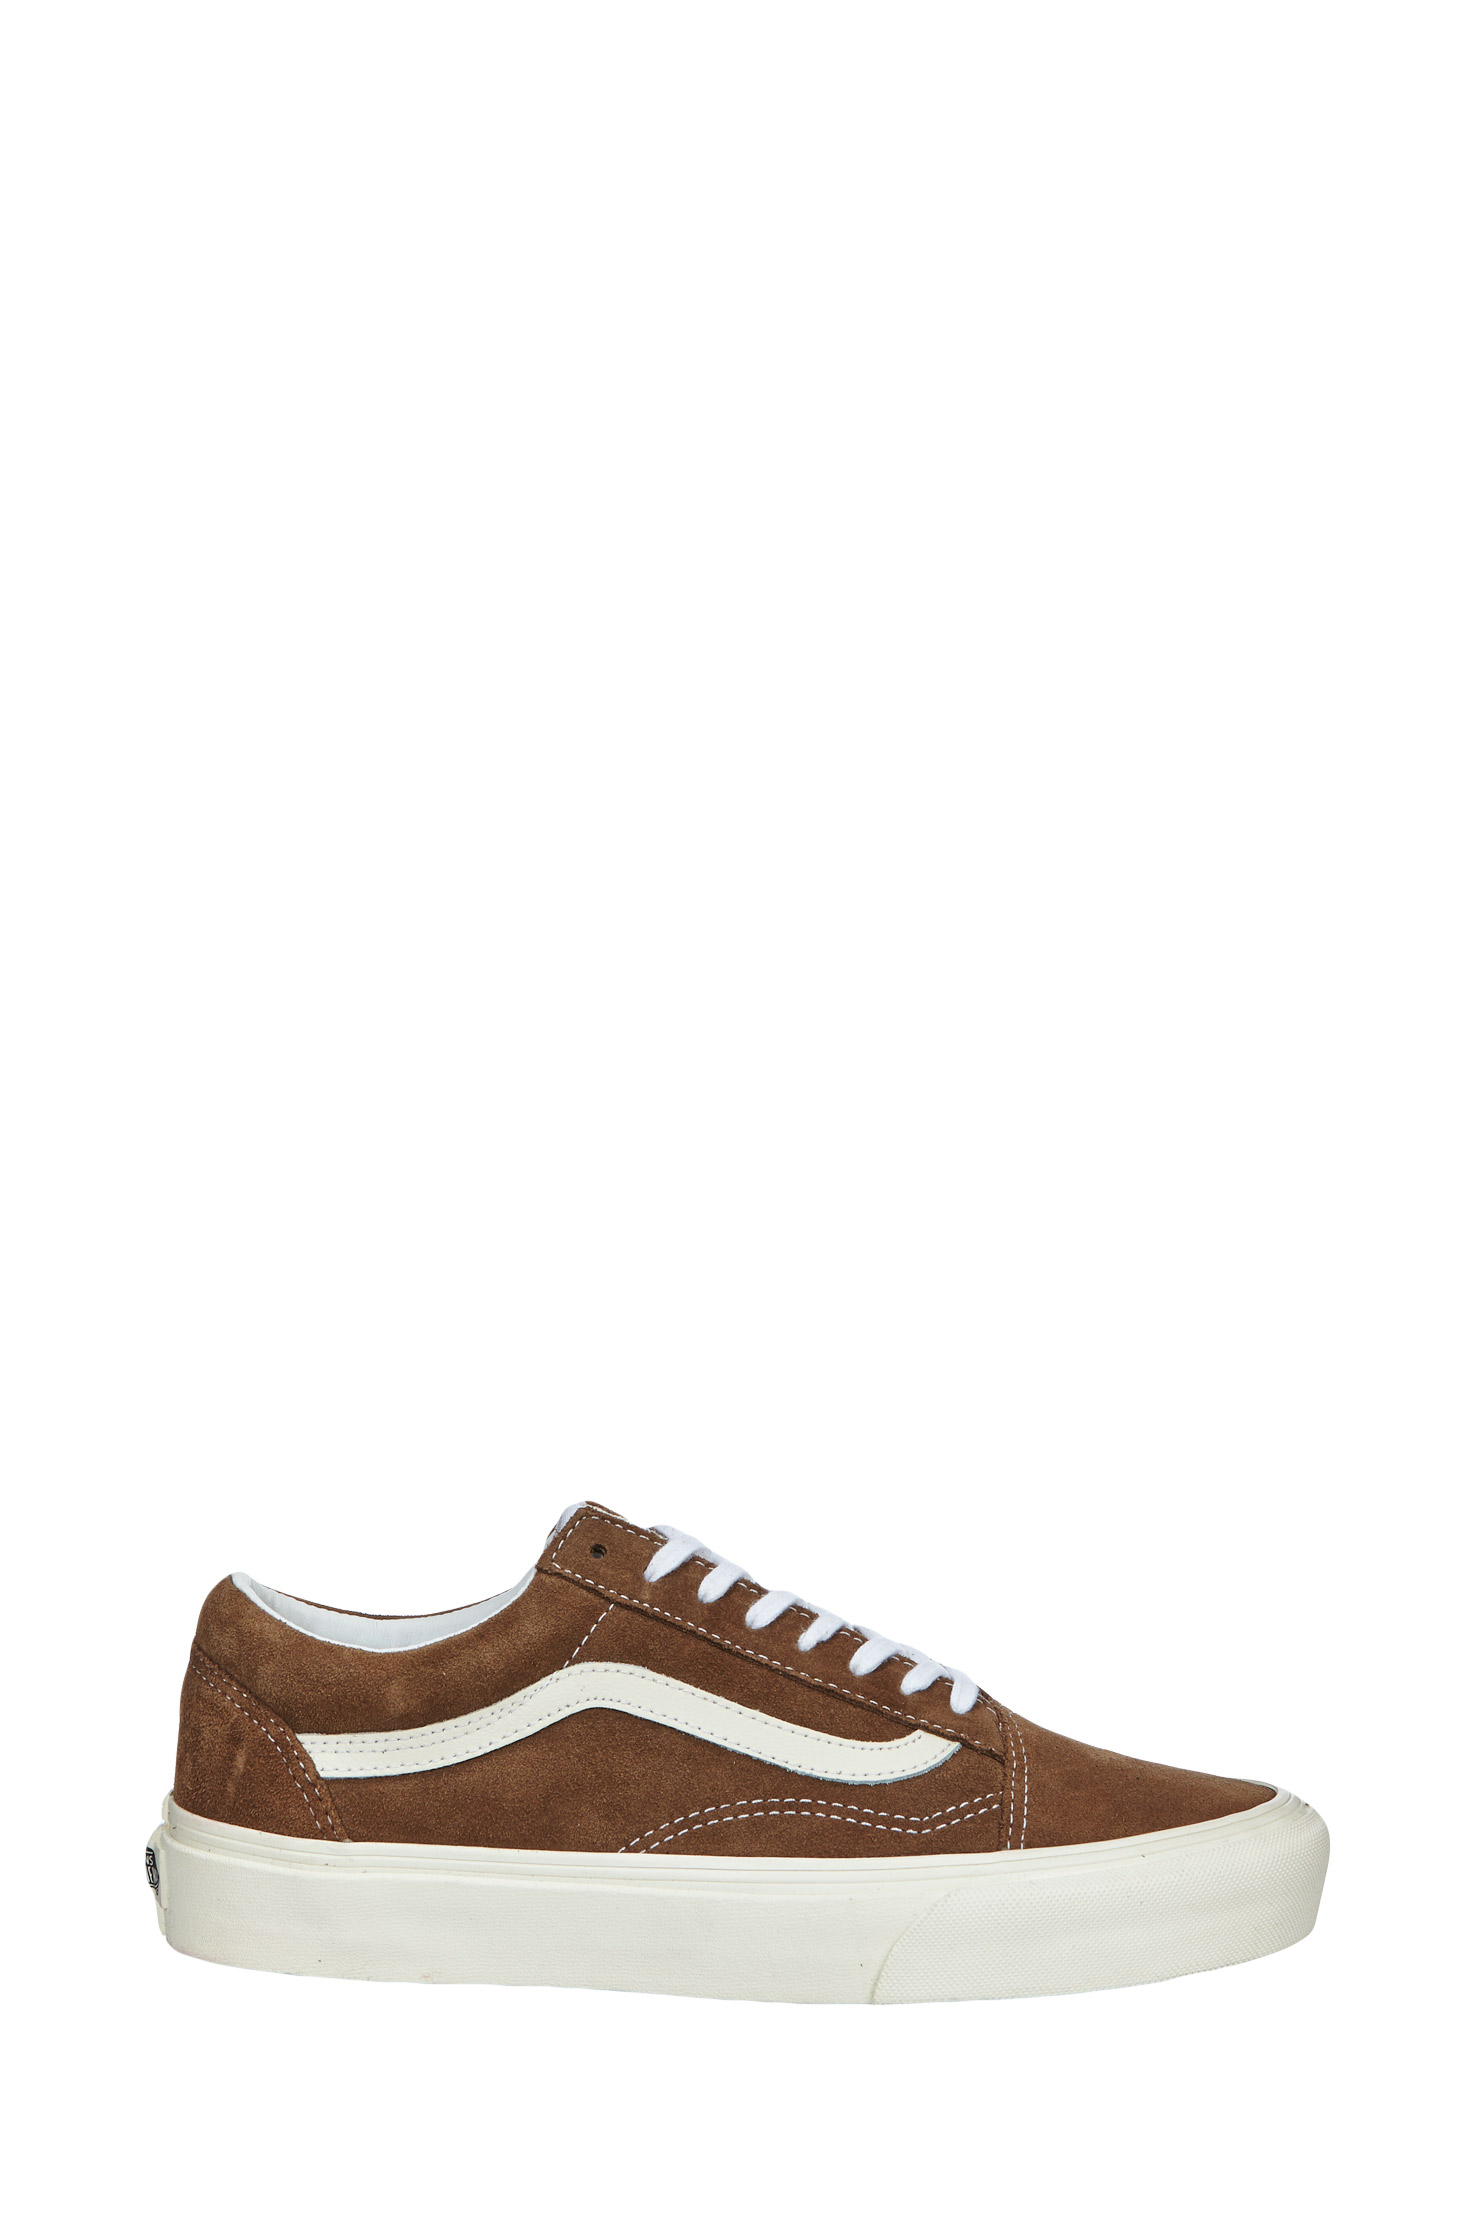 vans trainer vvokdo8 u old skool in brown for men lyst. Black Bedroom Furniture Sets. Home Design Ideas